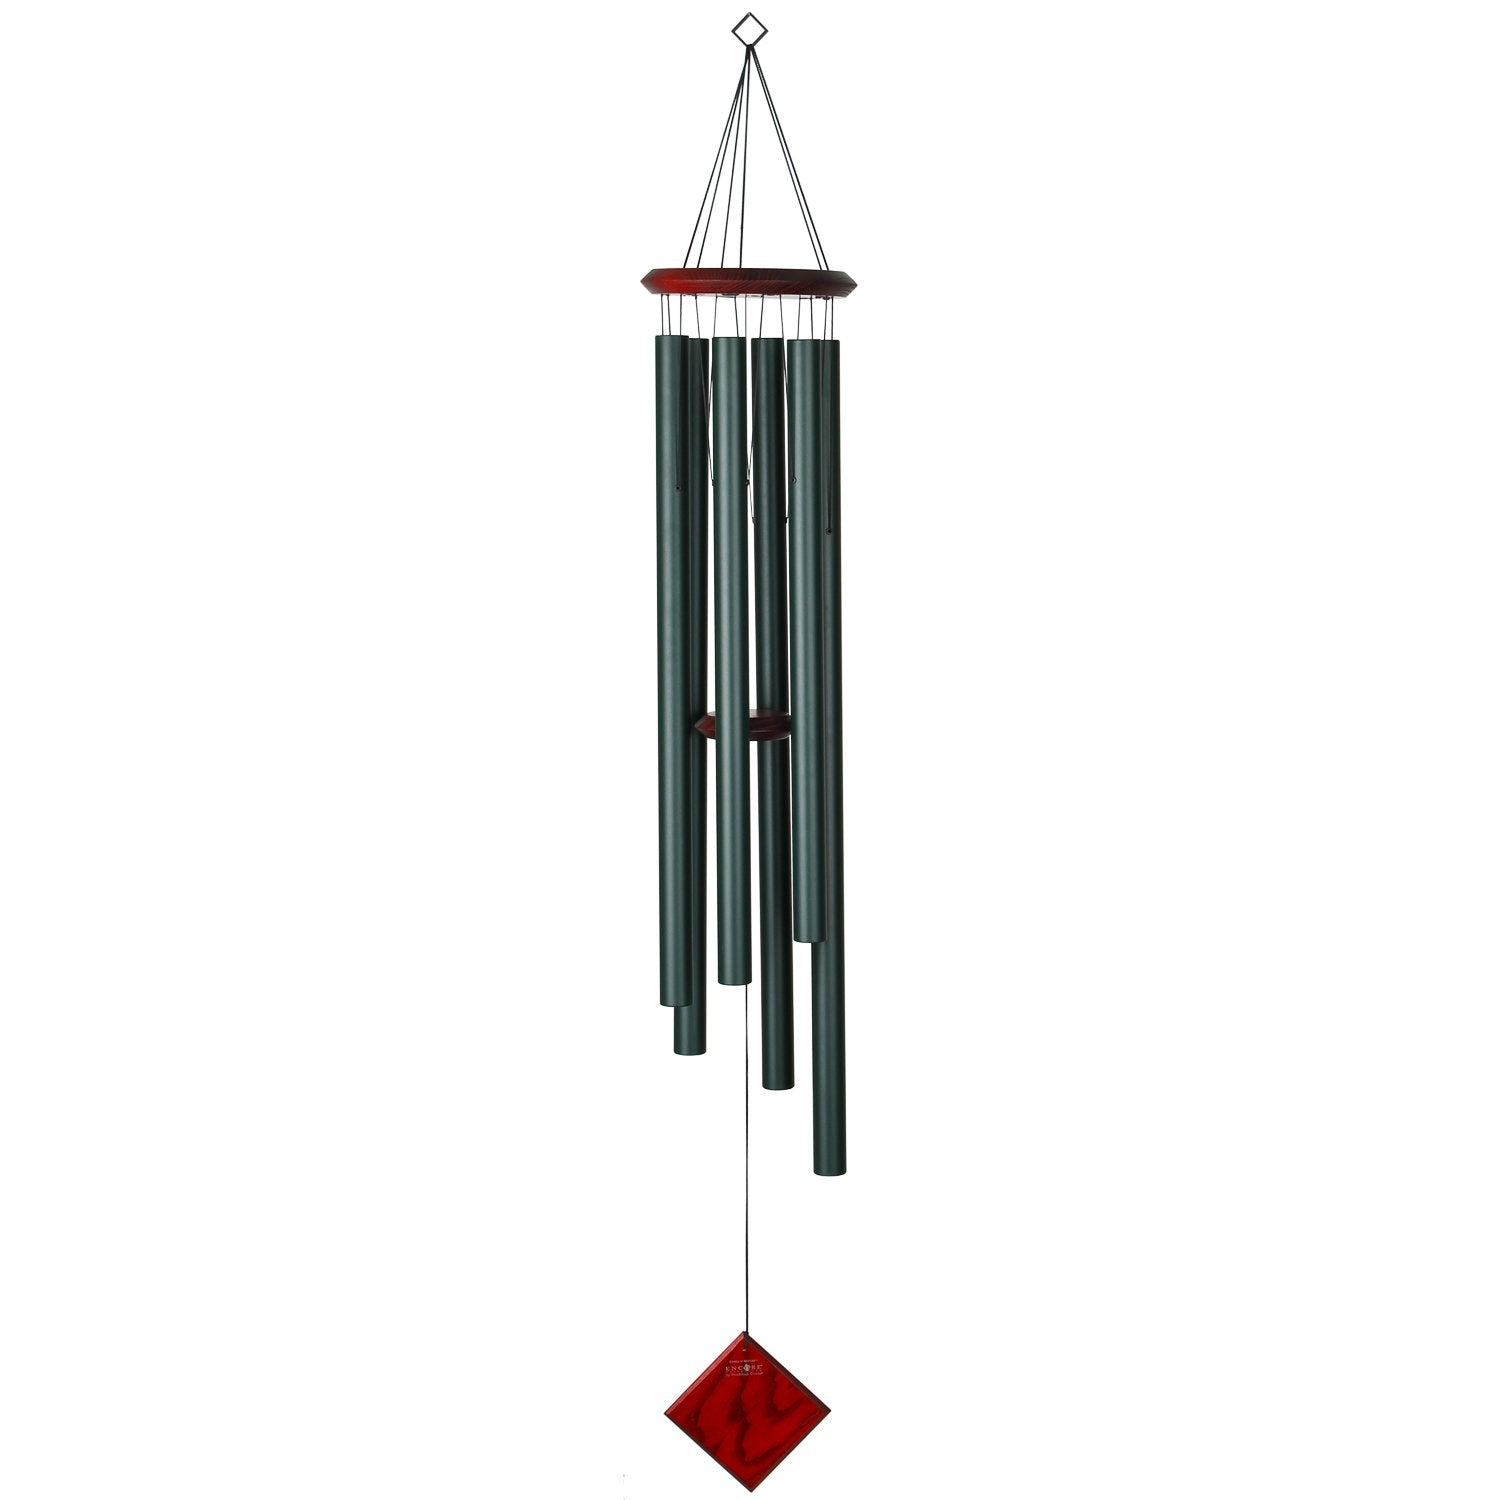 Encore Chimes of Neptune - Evergreen full product image